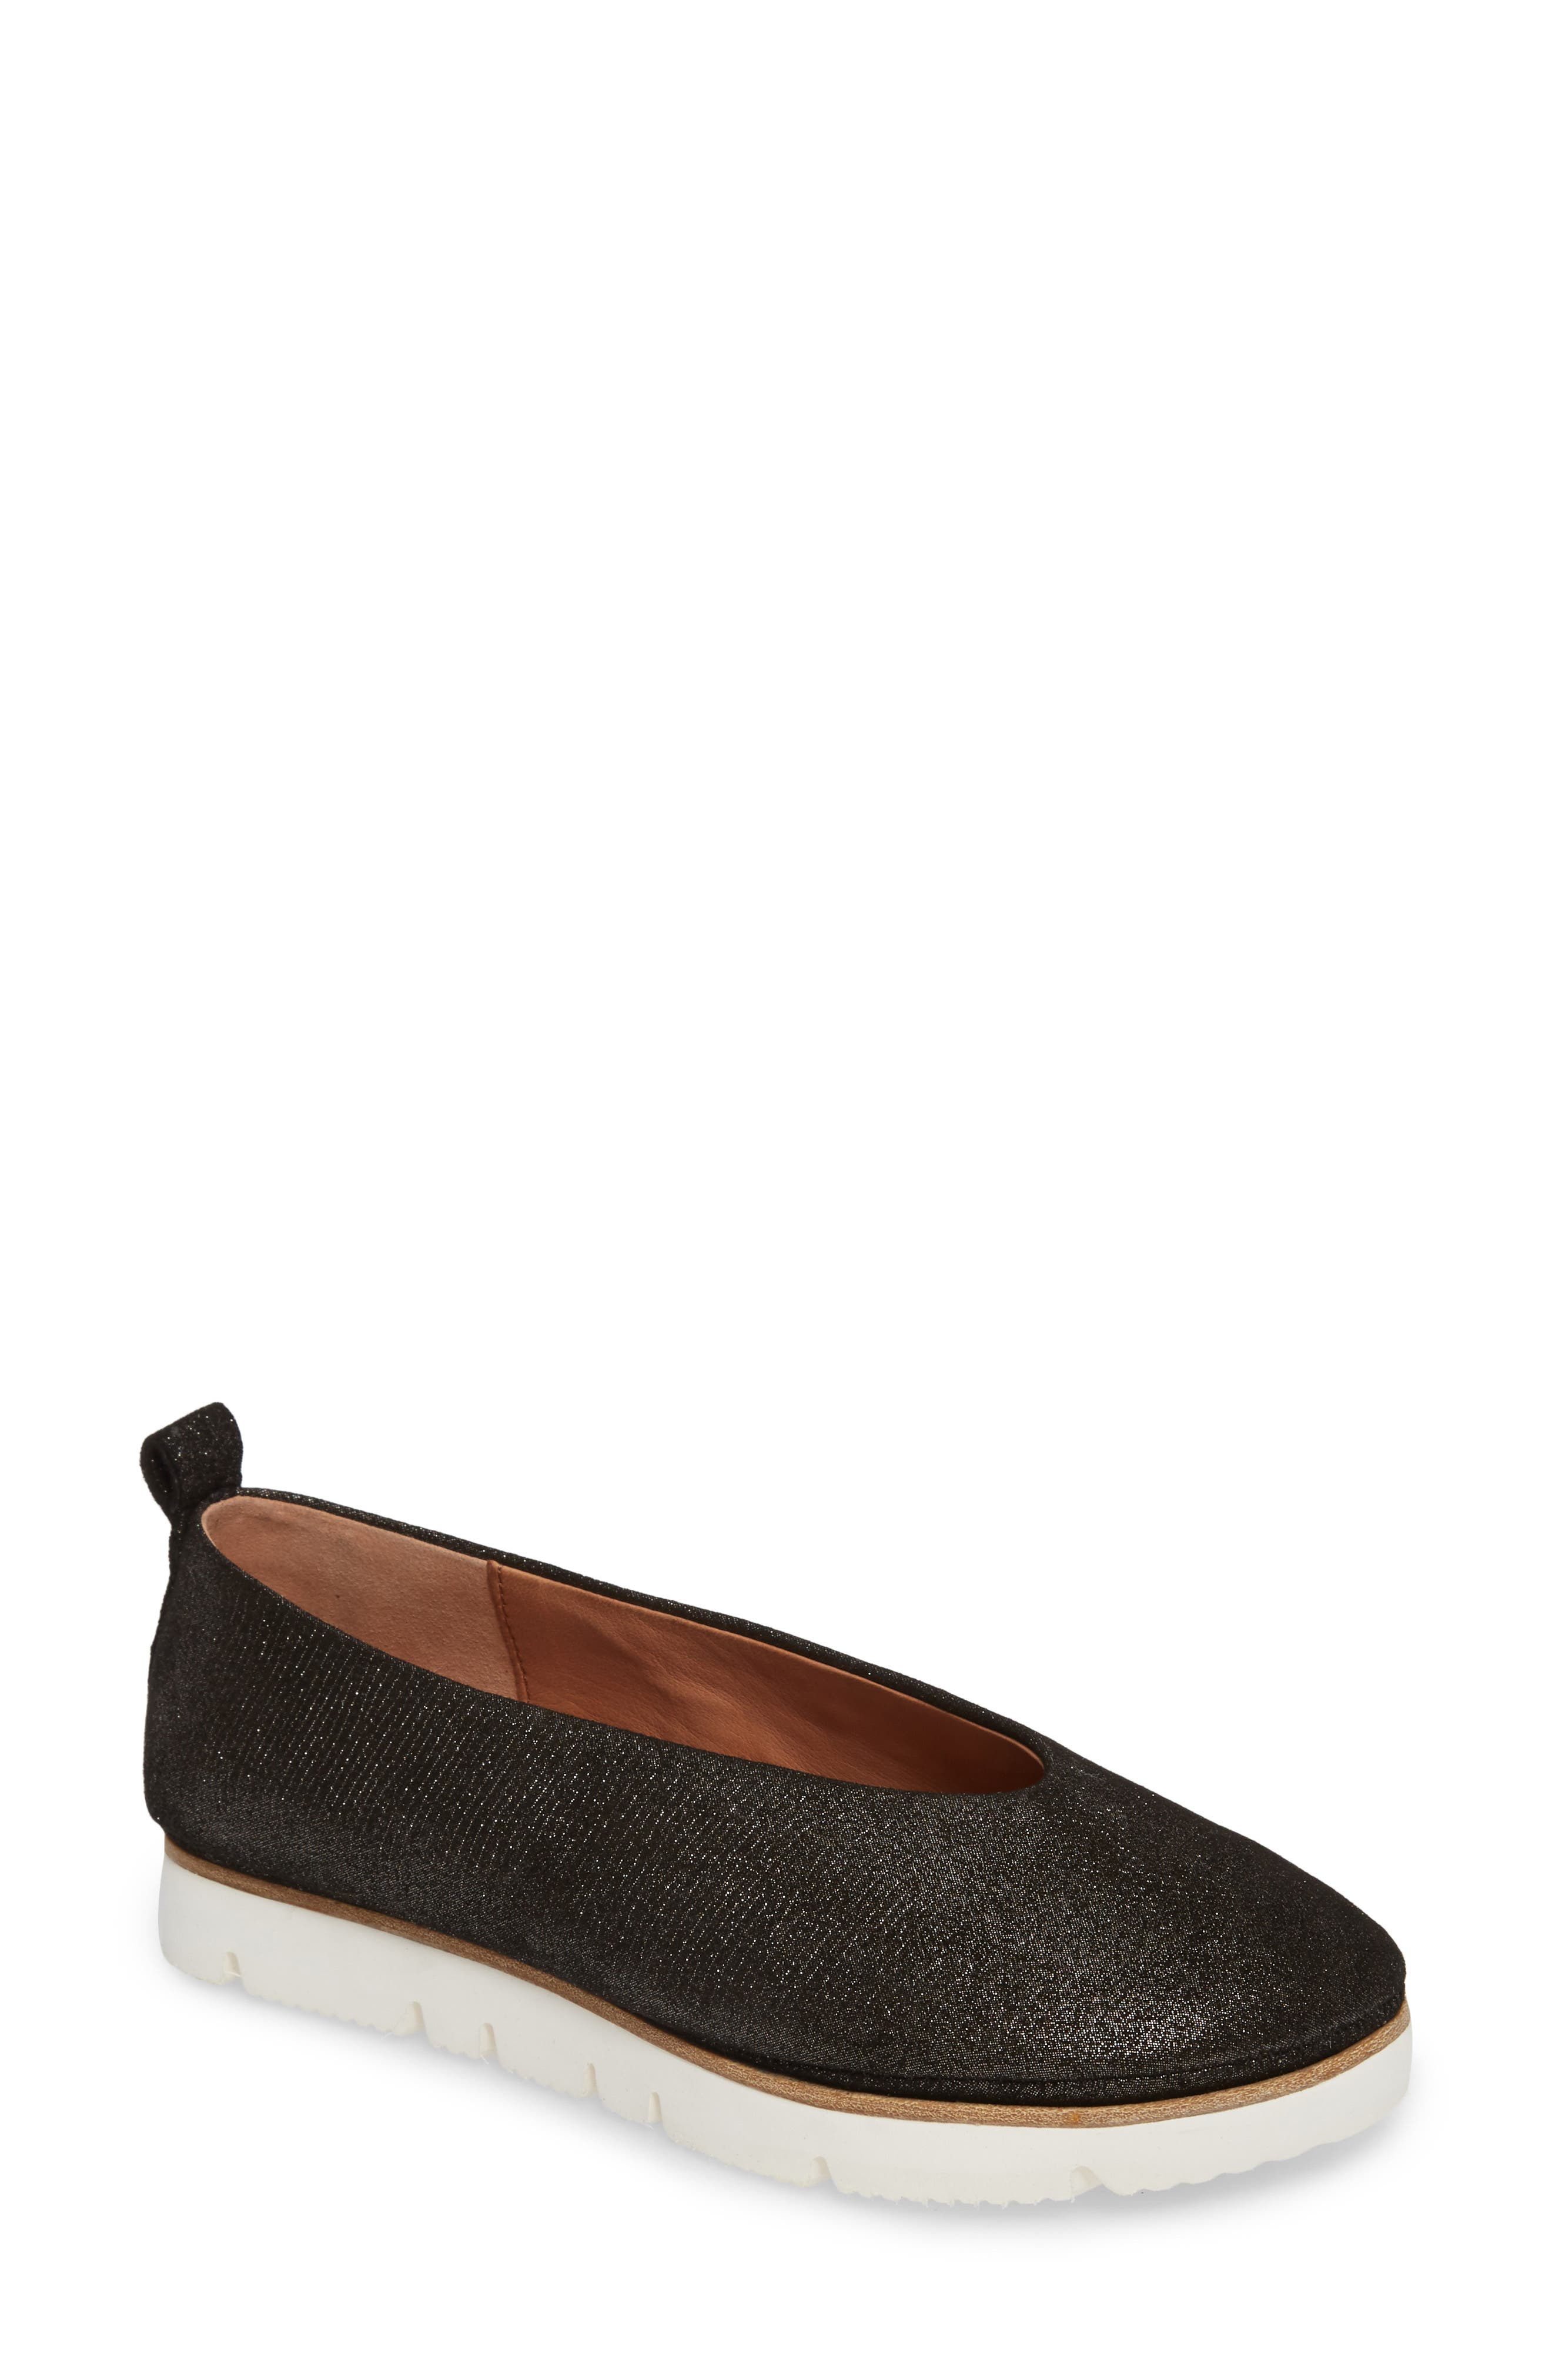 GENTLE SOULS BY KENNETH COLE Demi Flat, Main, color, BLACK EMBOSSED LEATHER